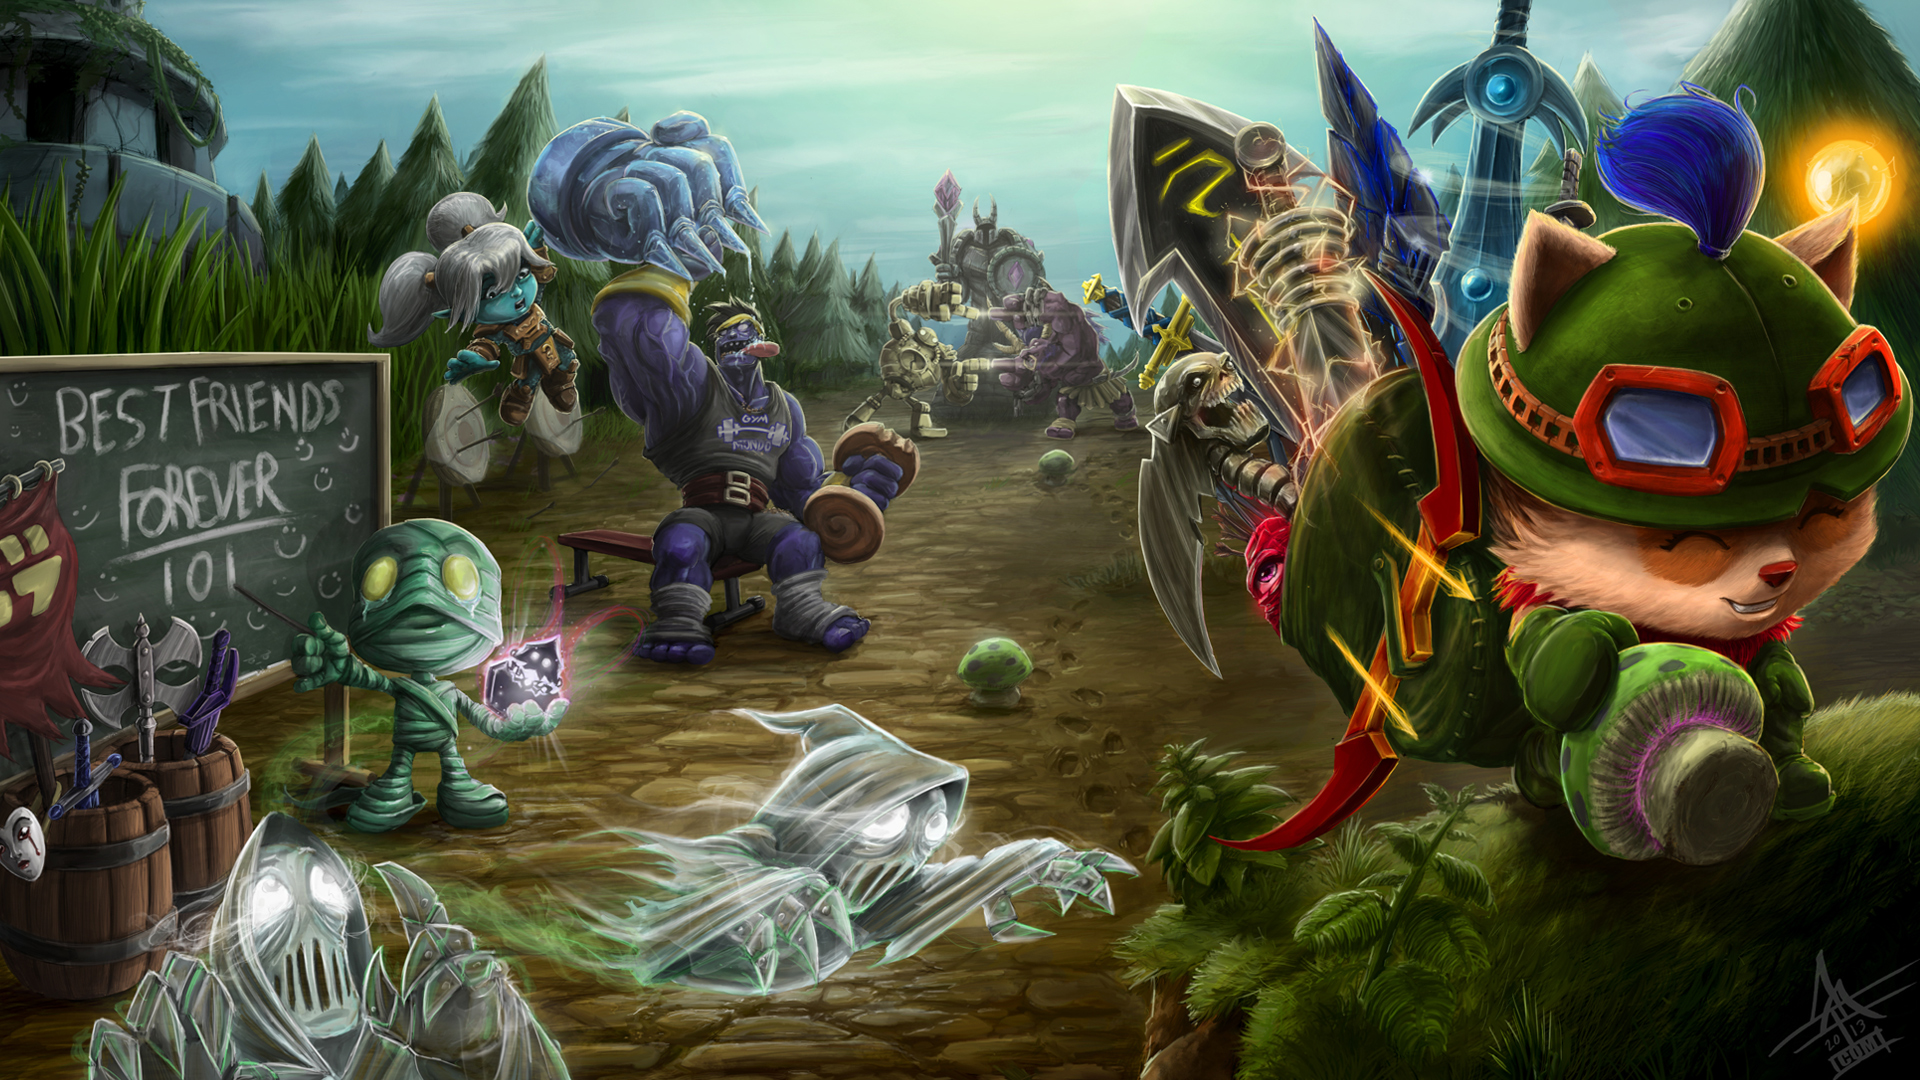 Free Download Alistar Teemo League Of Legends Game Hd Wallpaper